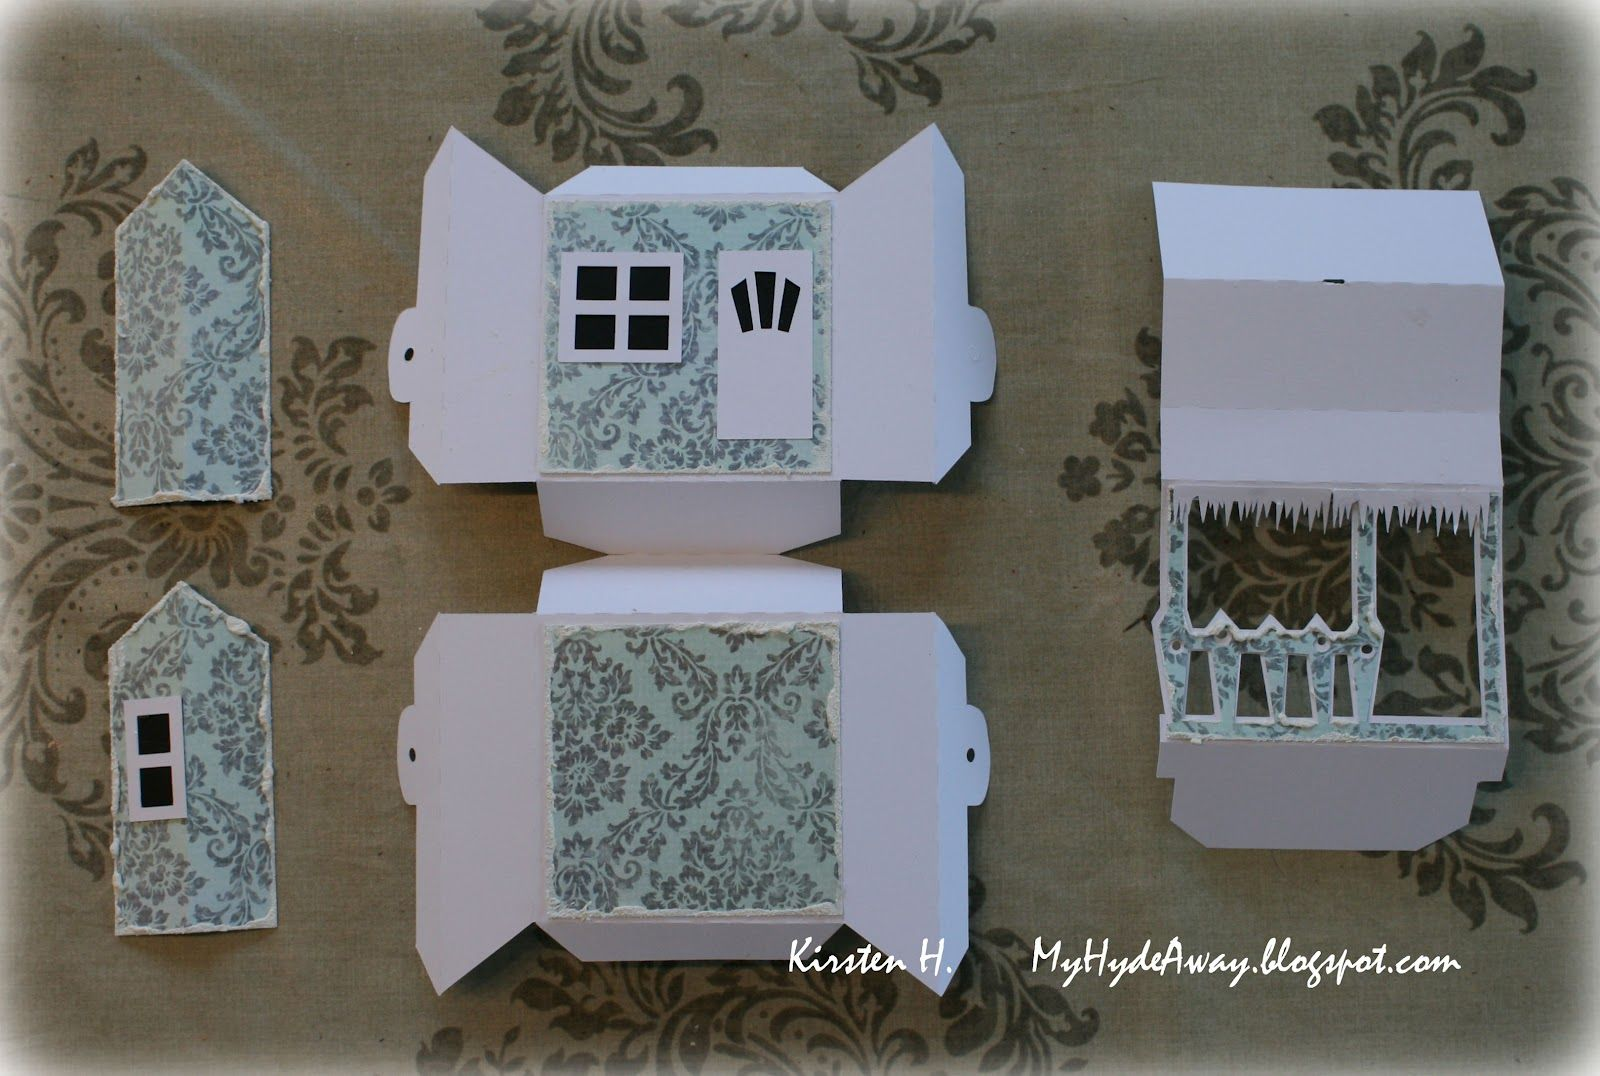 My Craft and Garden Tales: Pop up house card - tutorial with ...